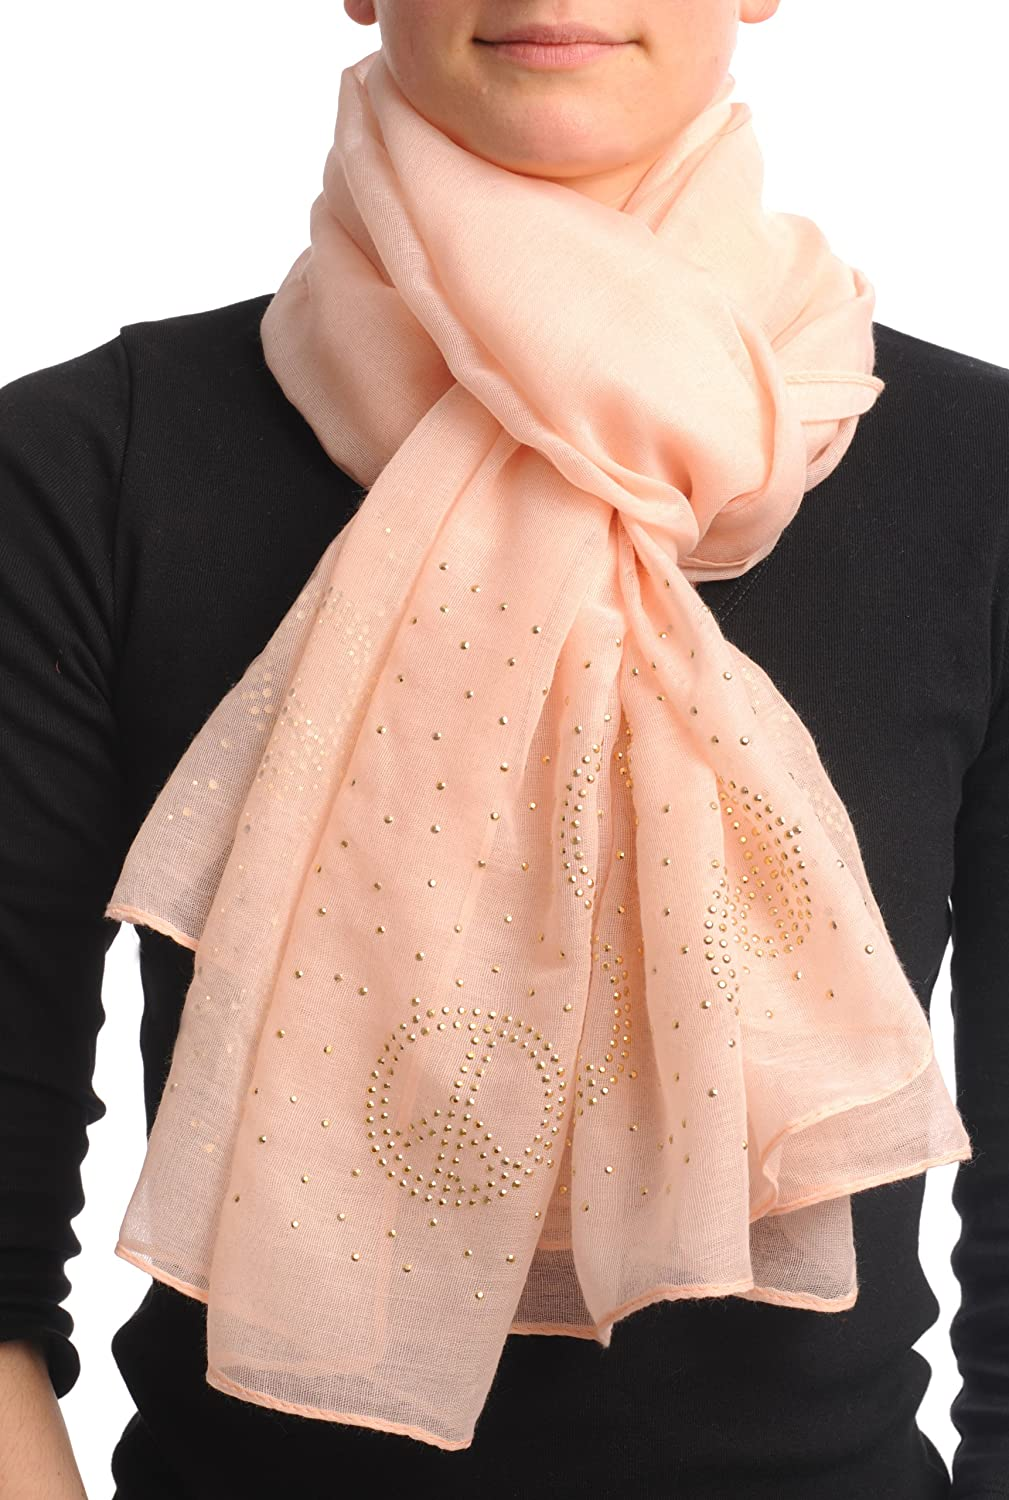 Spring Peach With Gold Studded Peace Signs Unisex Scarf & Beach Sarong - Scarf